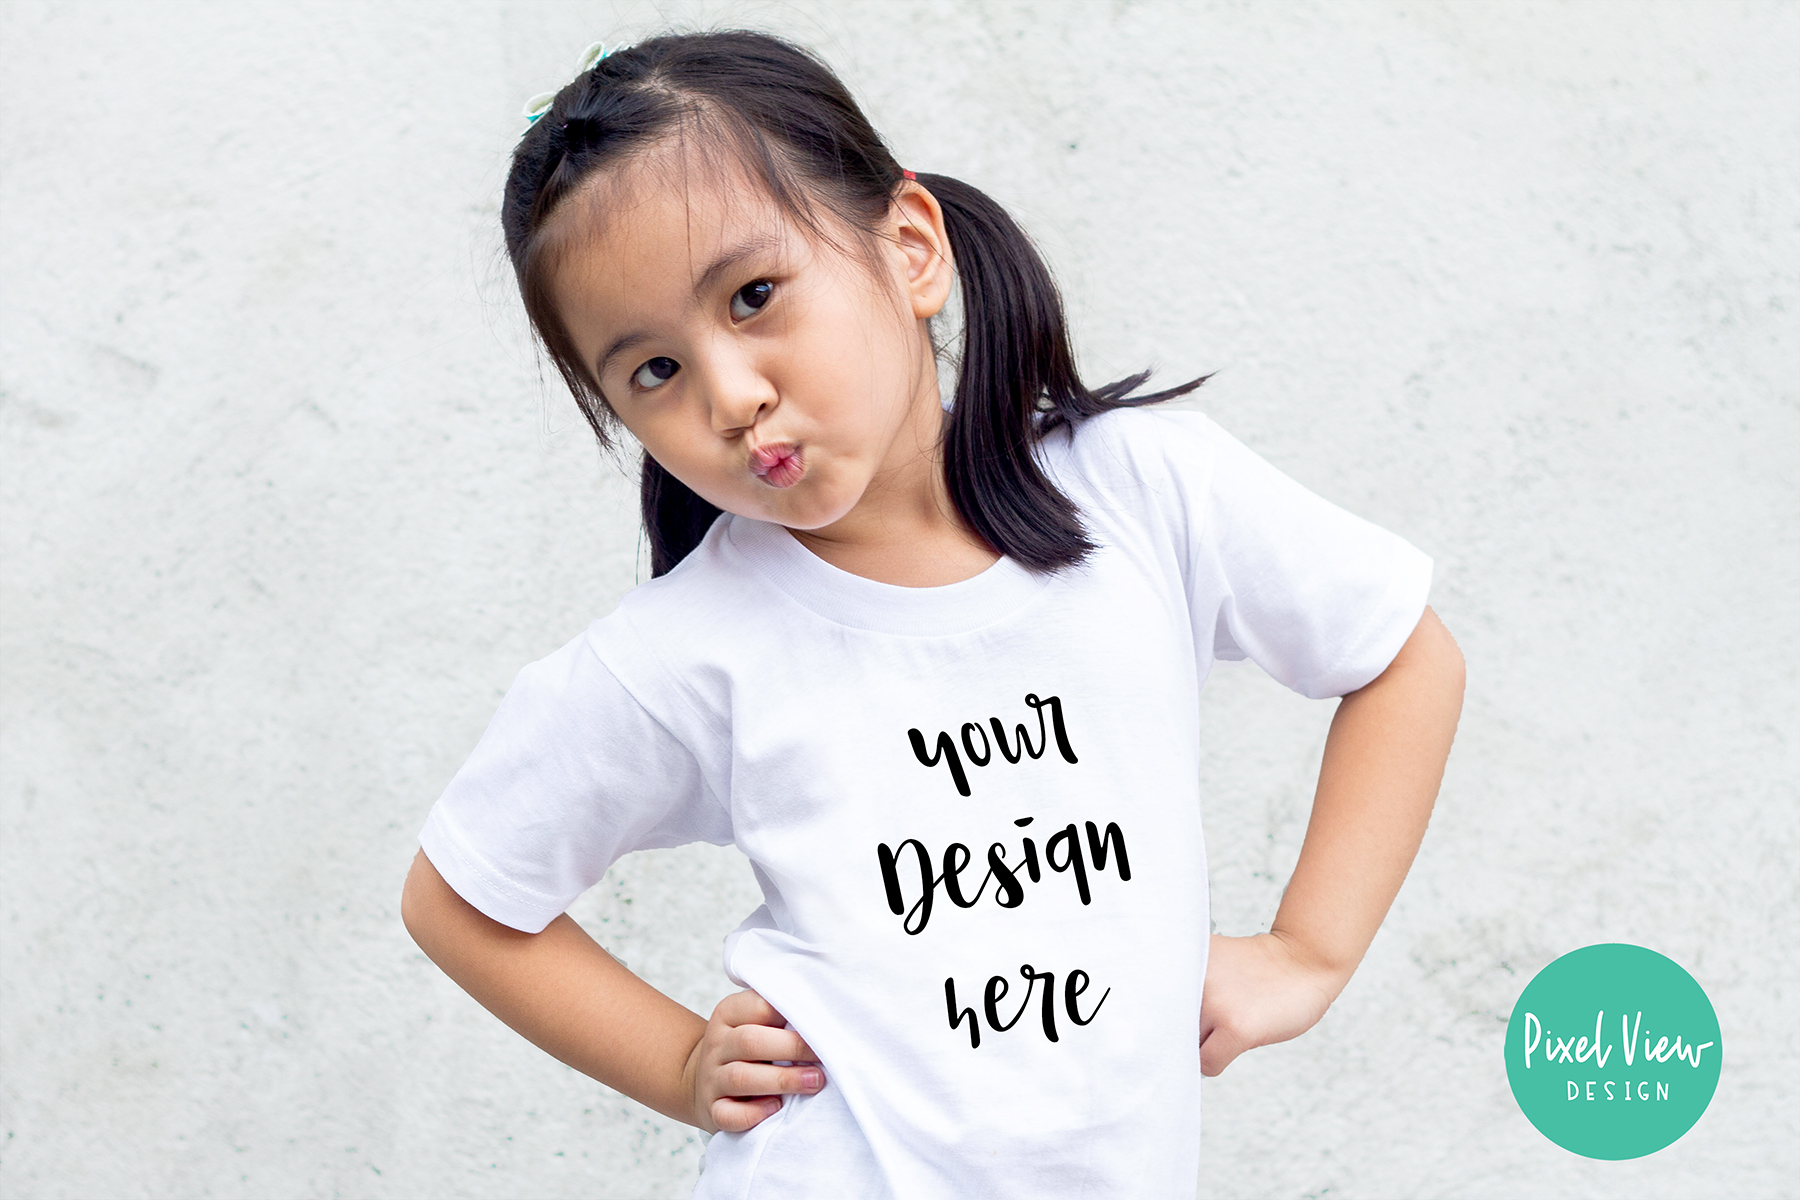 Girl S White T Shirt Mockup Graphic By Pixel View Design